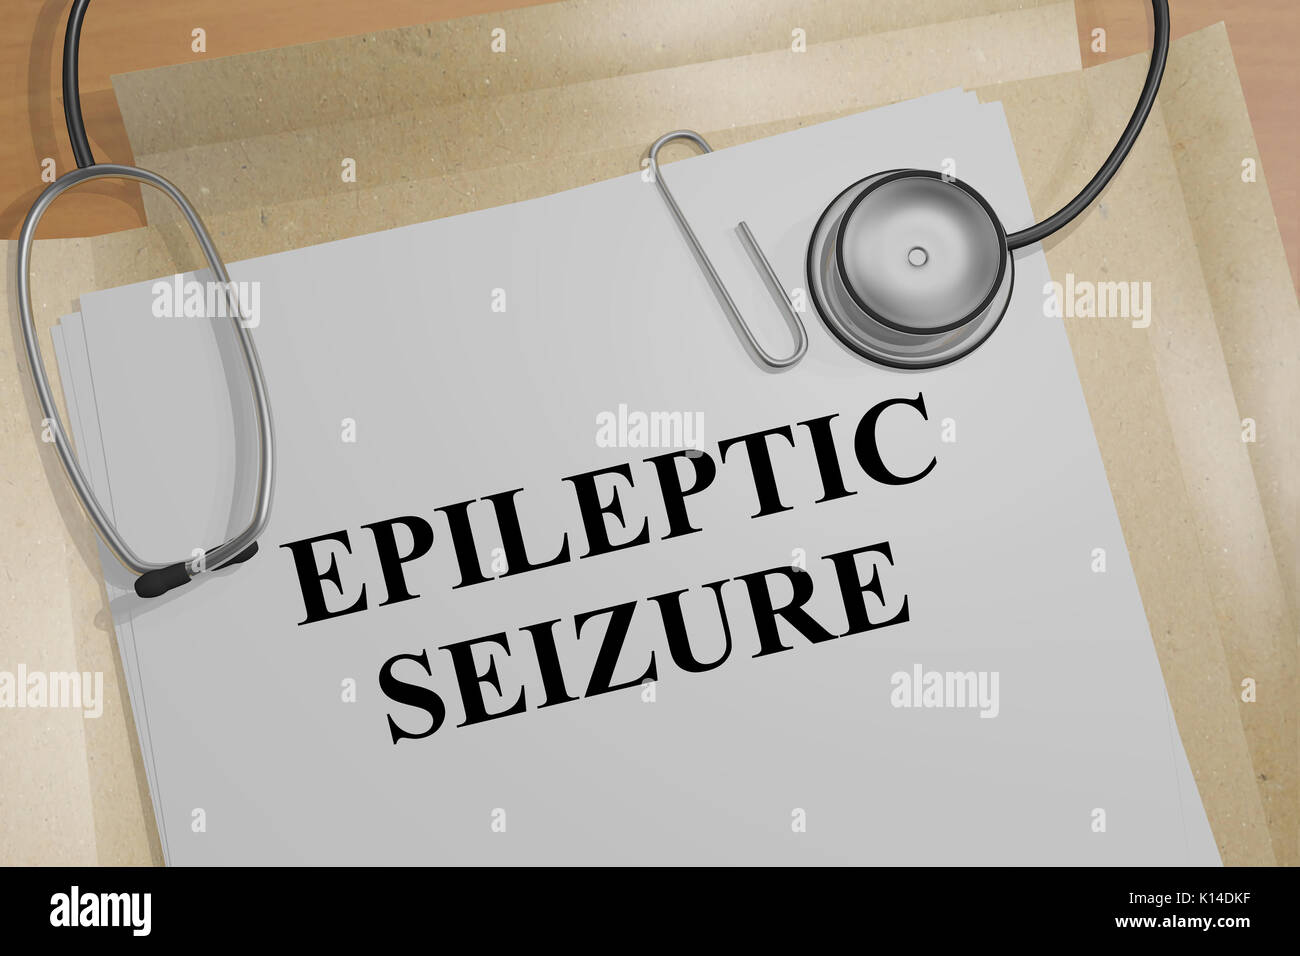 Epileptic DisorderStock Photos and Images